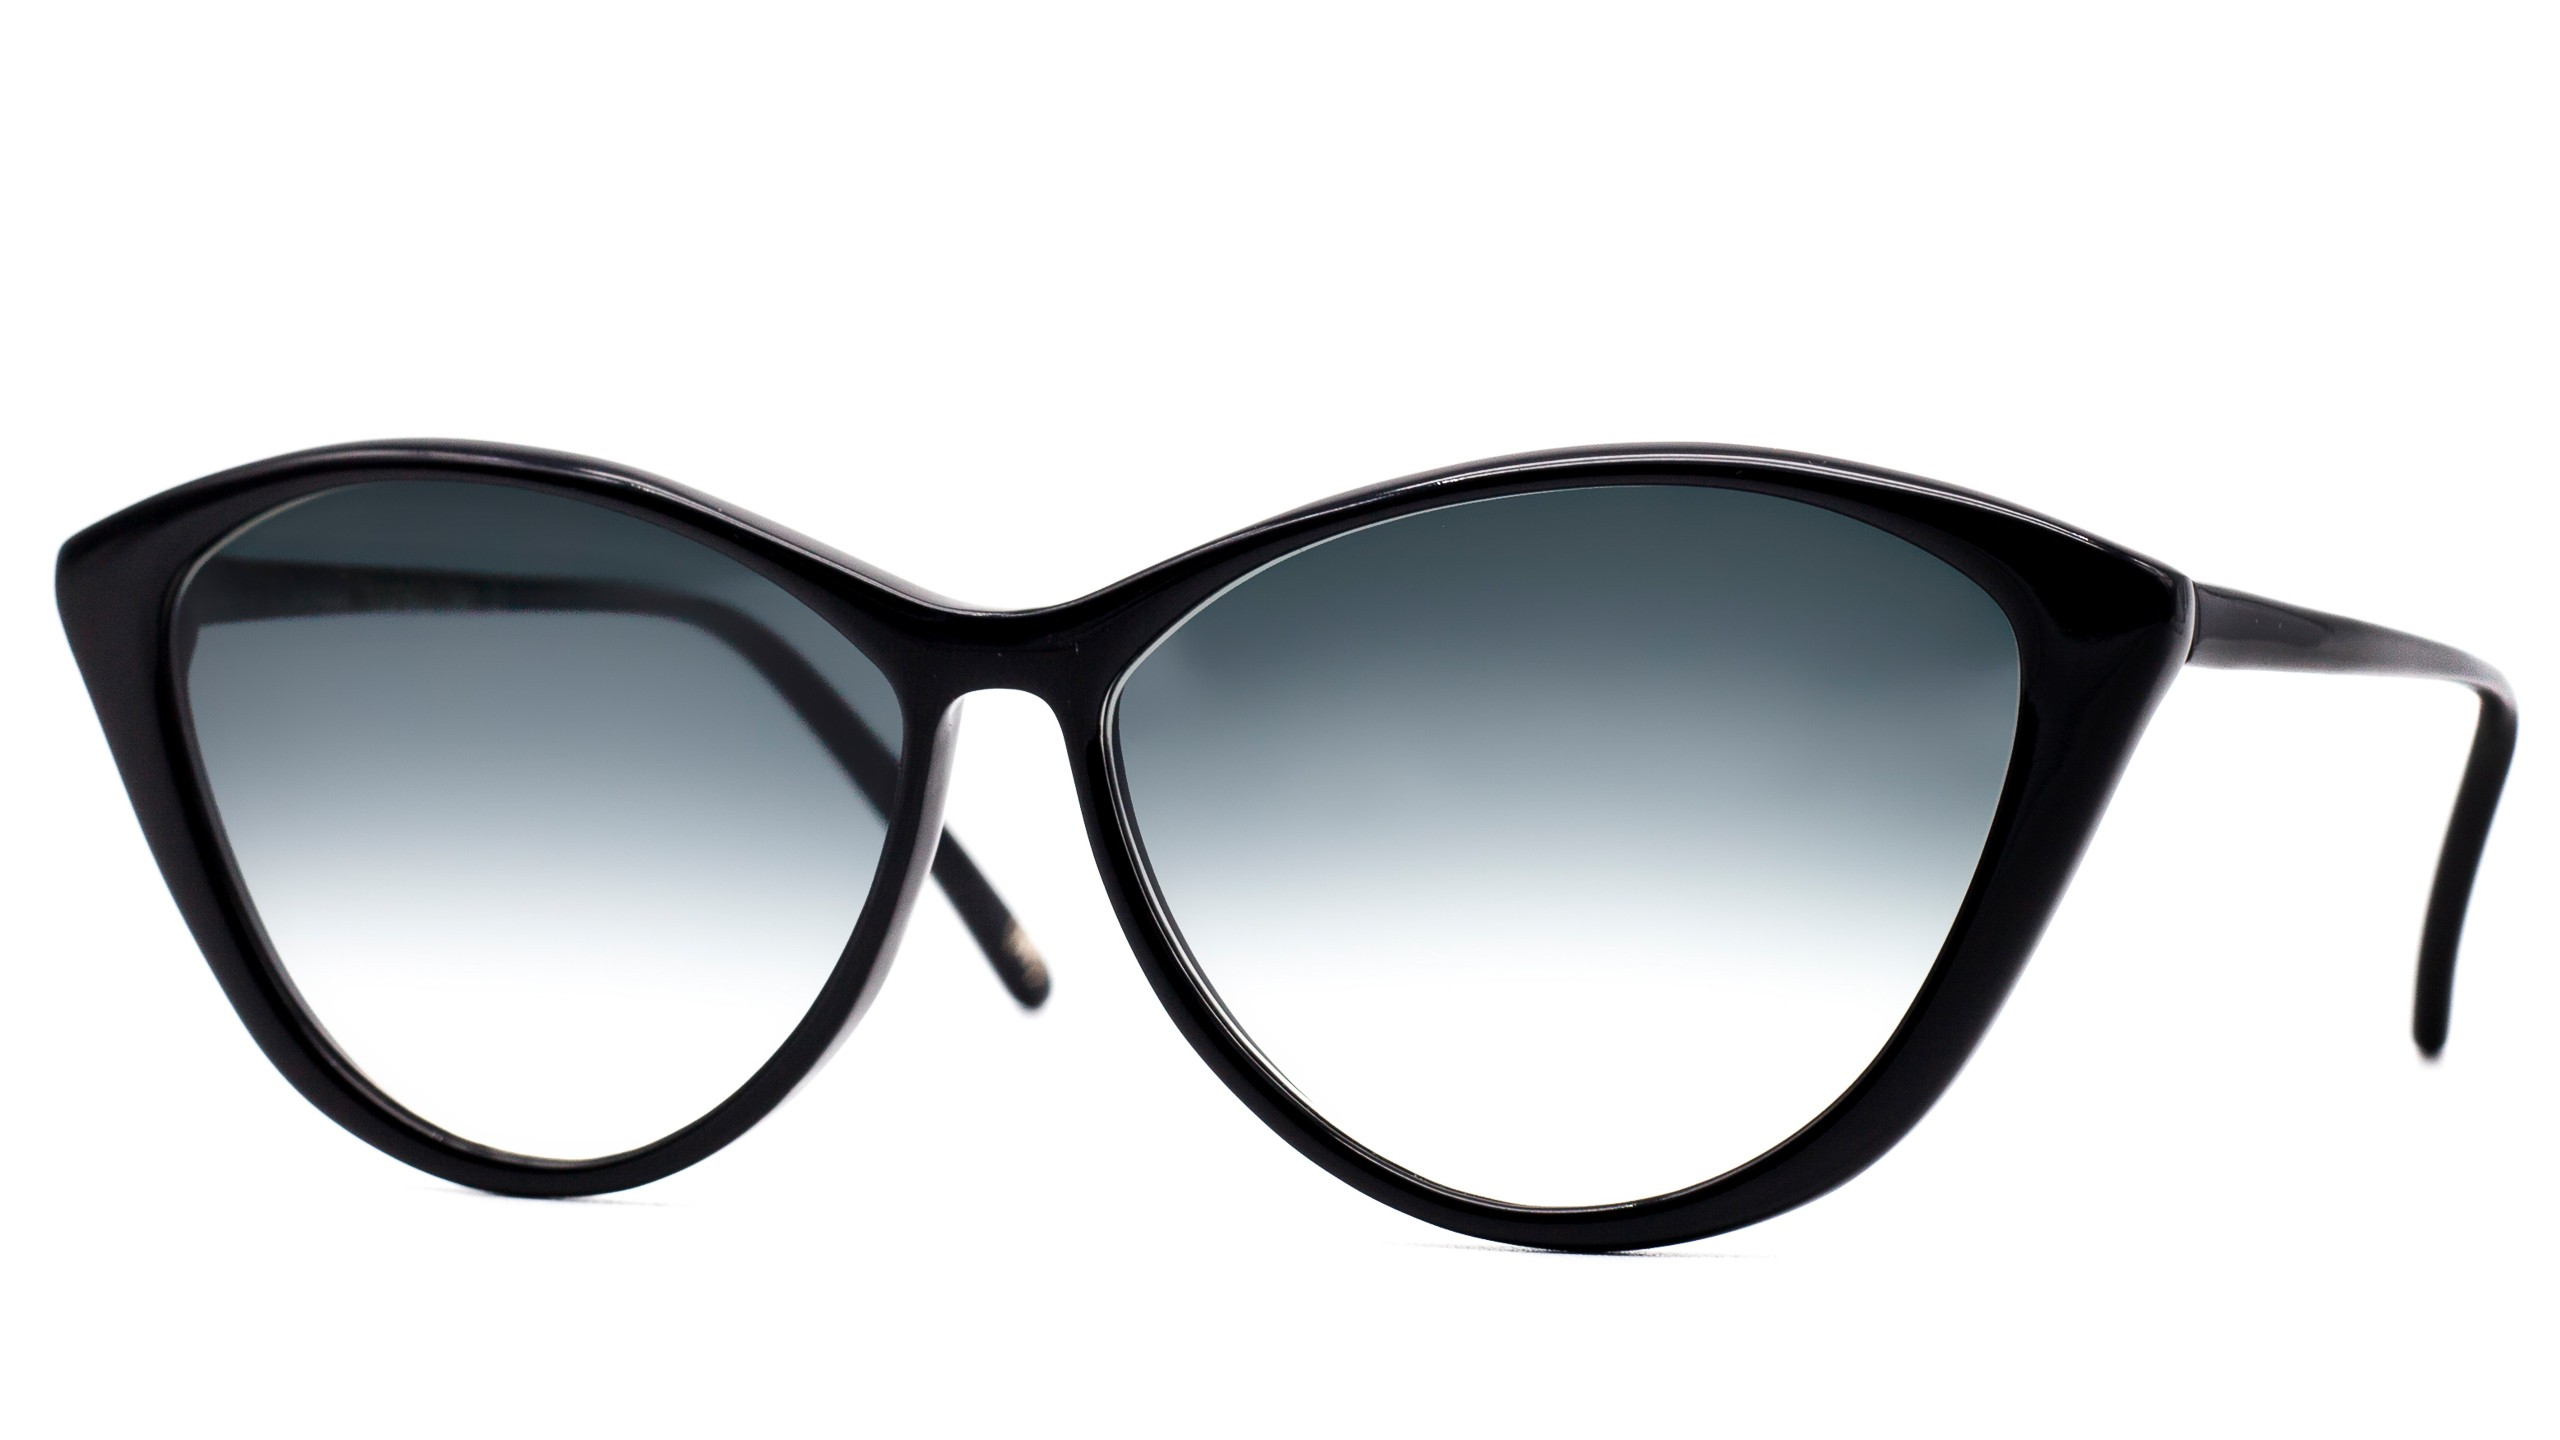 eyeglasses-Nathan-Kaltermann-made-in-Italy-Audrey-C01-Sole2